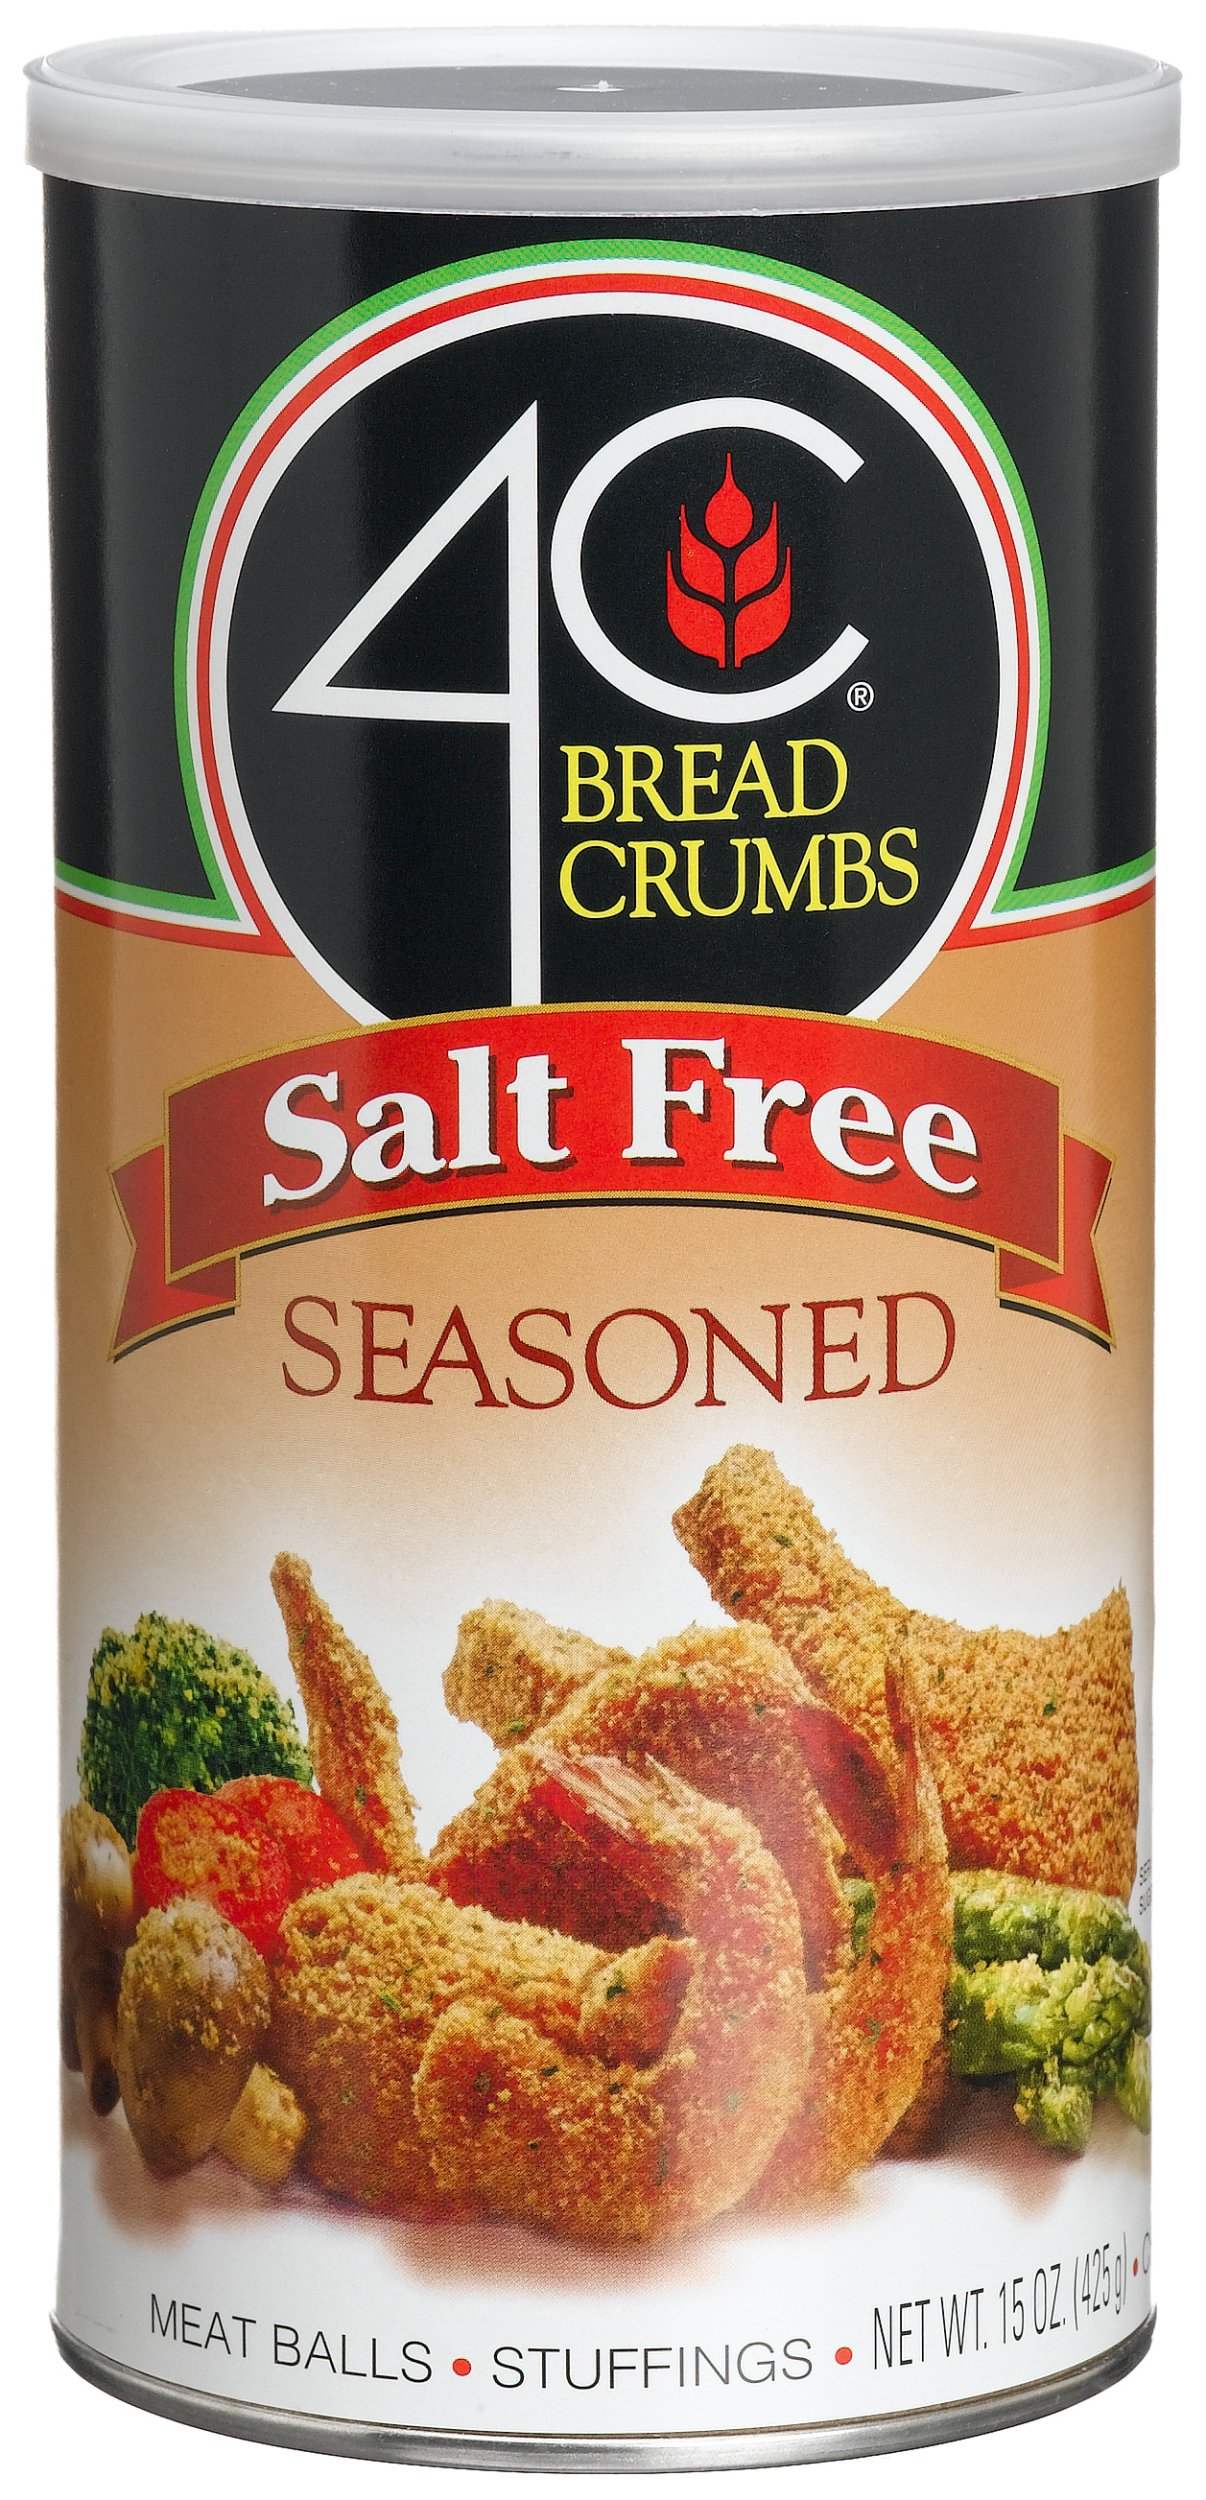 4C Salt Free Seasoned Bread Crumbs, 12-Ounce Canisters (Pack of 12)